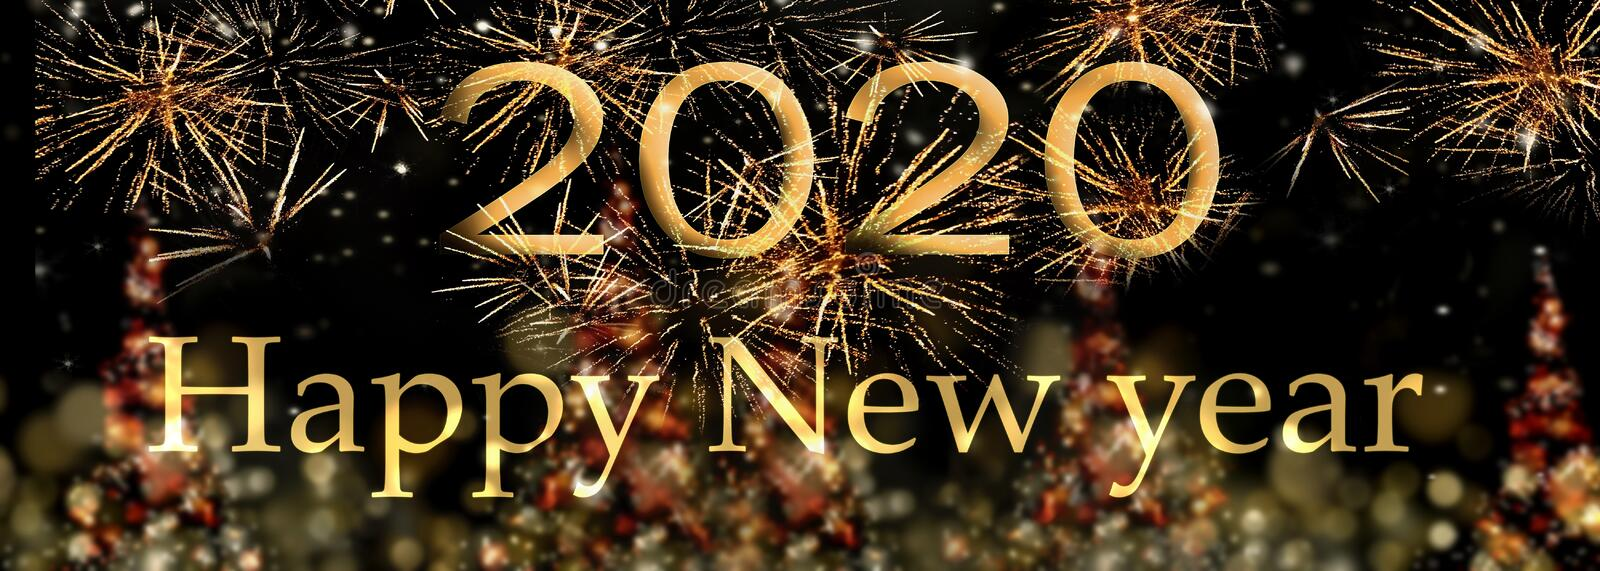 happy new year 2020 on abstract night stock photo image of celebration card 164569988 happy new year 2020 on abstract night